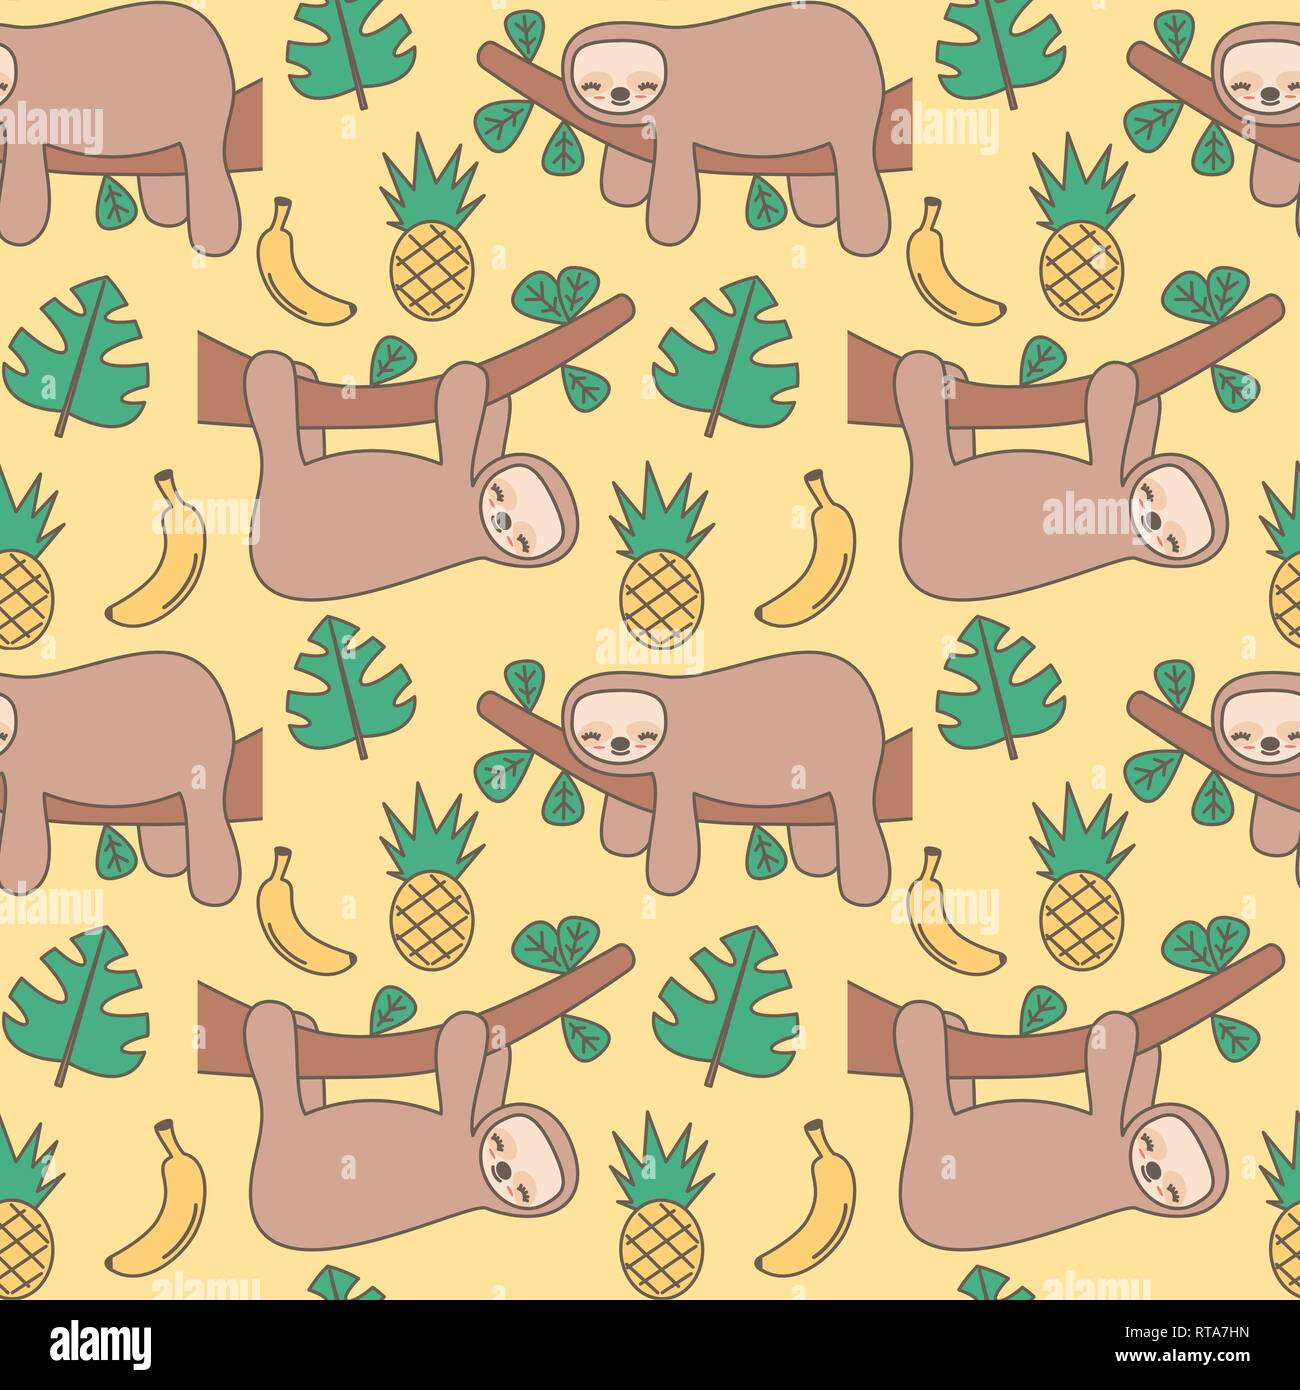 Cute Cartoon Sloth Seamless Vector Pattern Background Illustration Stock Vector Image Art Alamy